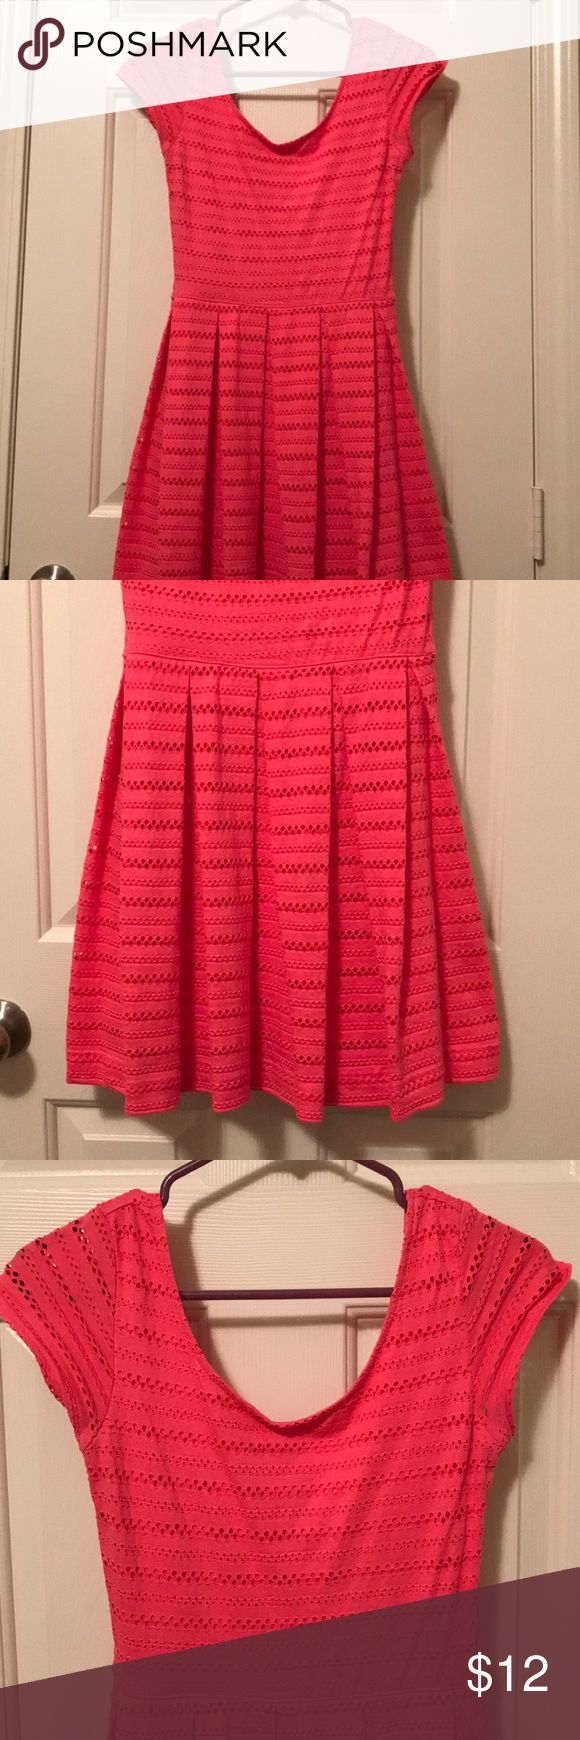 Bright pink sundress Mini bright pink cotton and spandex sundress with small cap sleeves. Length is above the knee and a juniors medium. Worn a few times, great condition. SO Dresses Mini